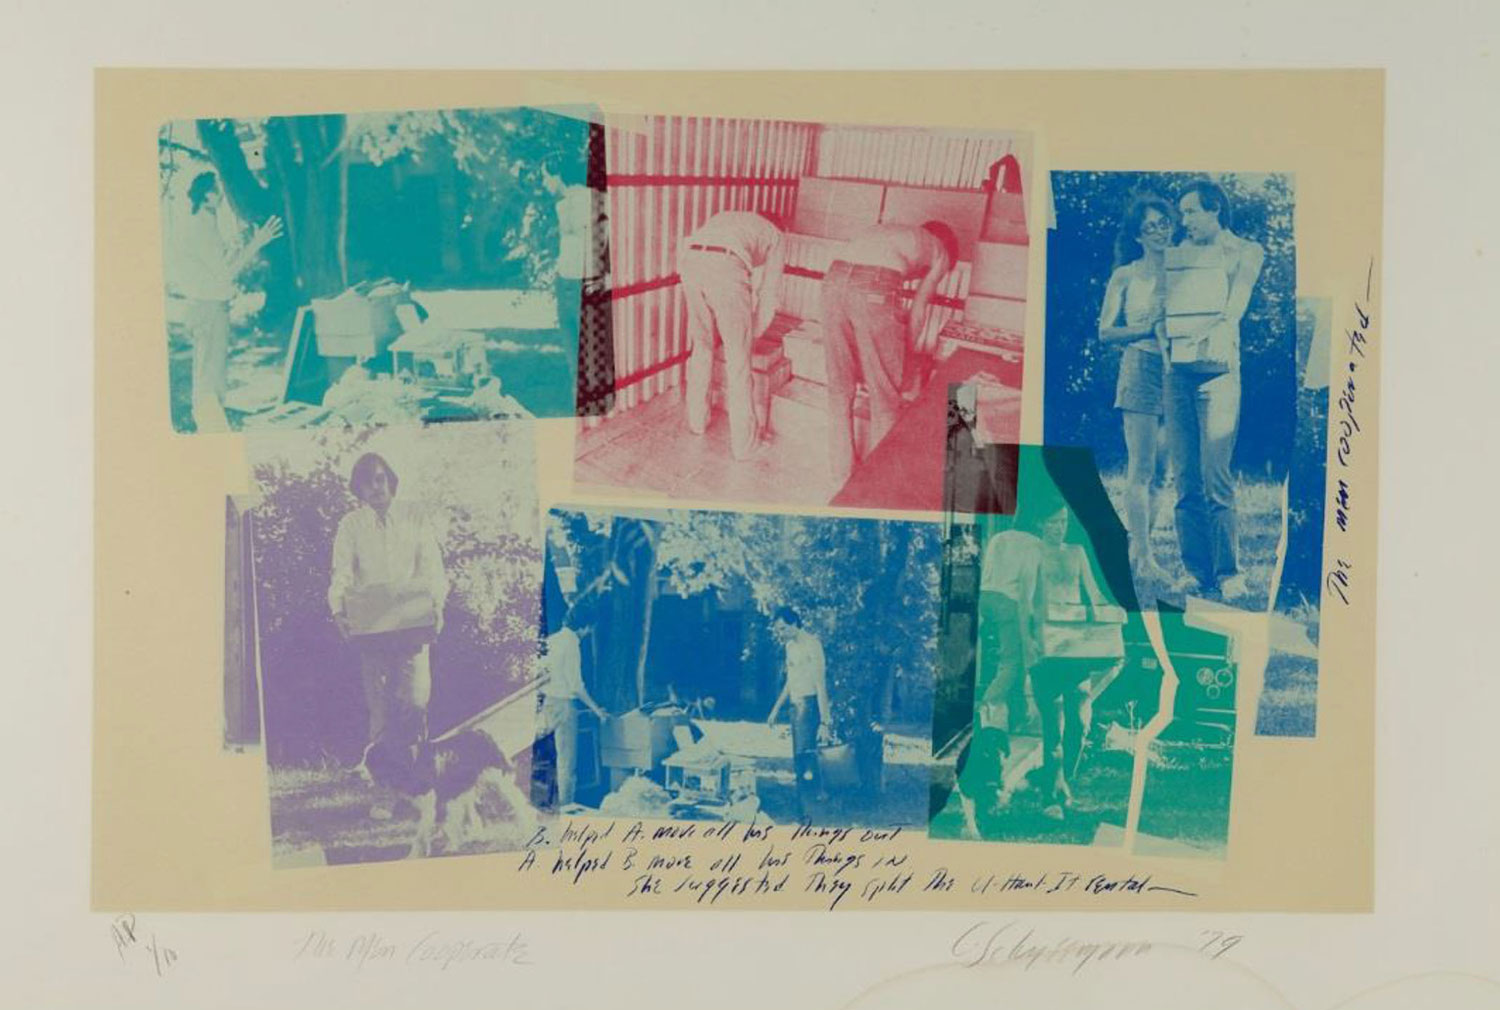 Carolee  Schneemann - The Men Cooperate, 1979